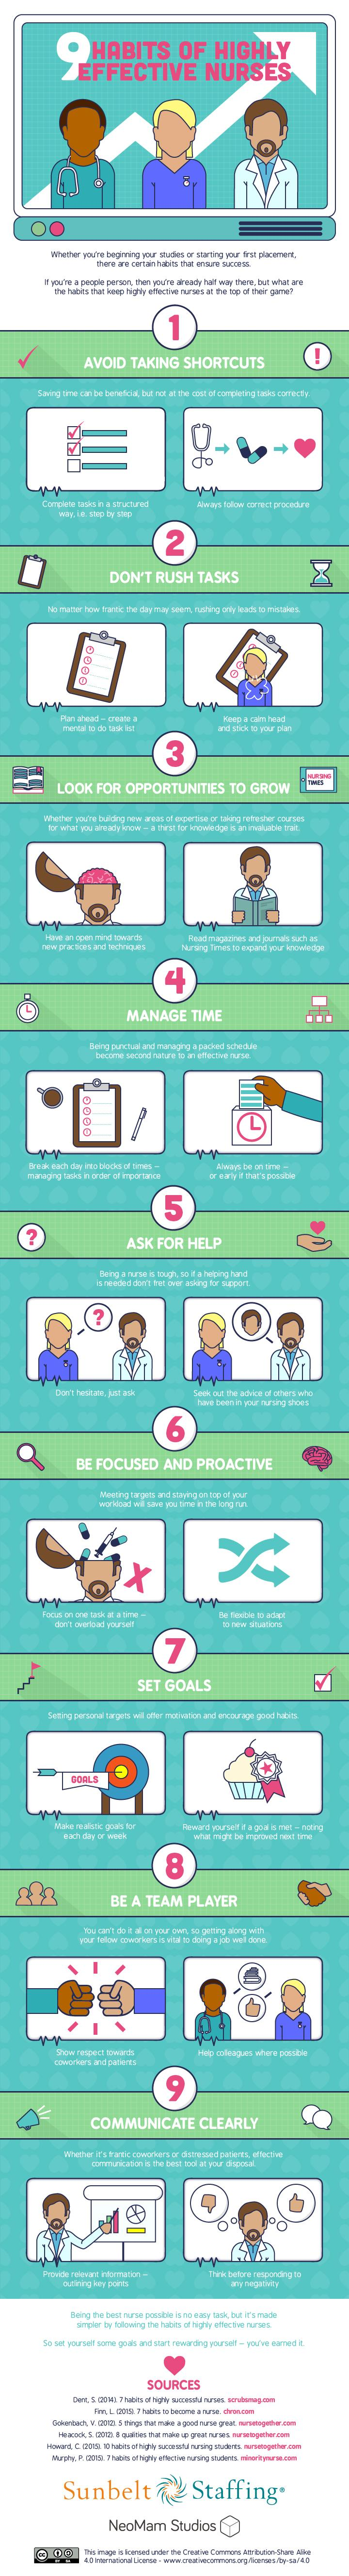 9-habits-of-highly-effective-nurses